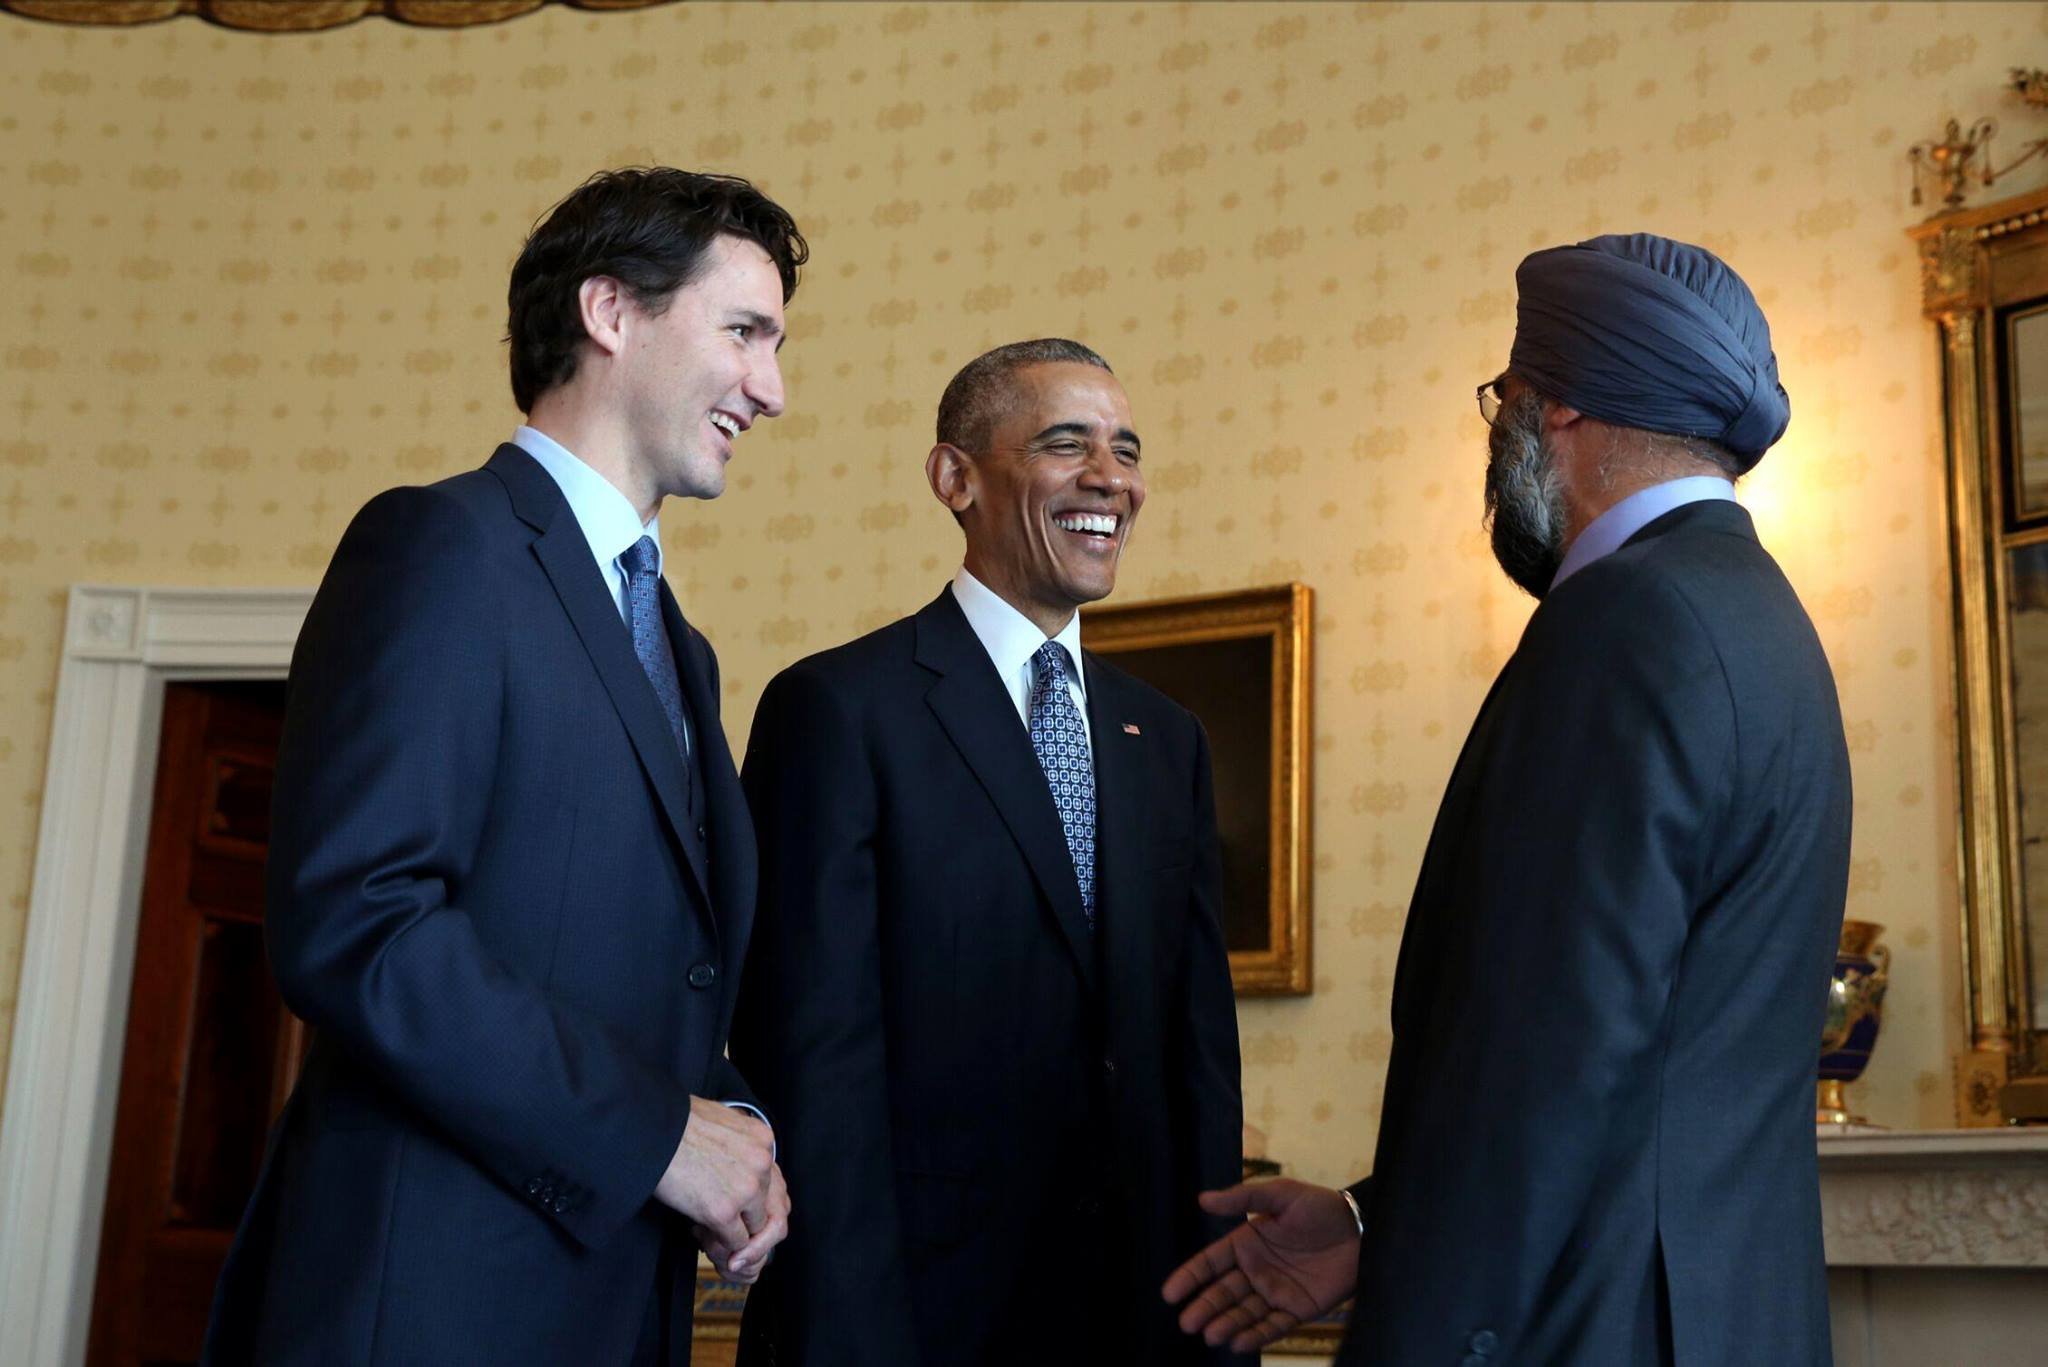 Barack Obama urges Canadians to vote for Justin Trudeau